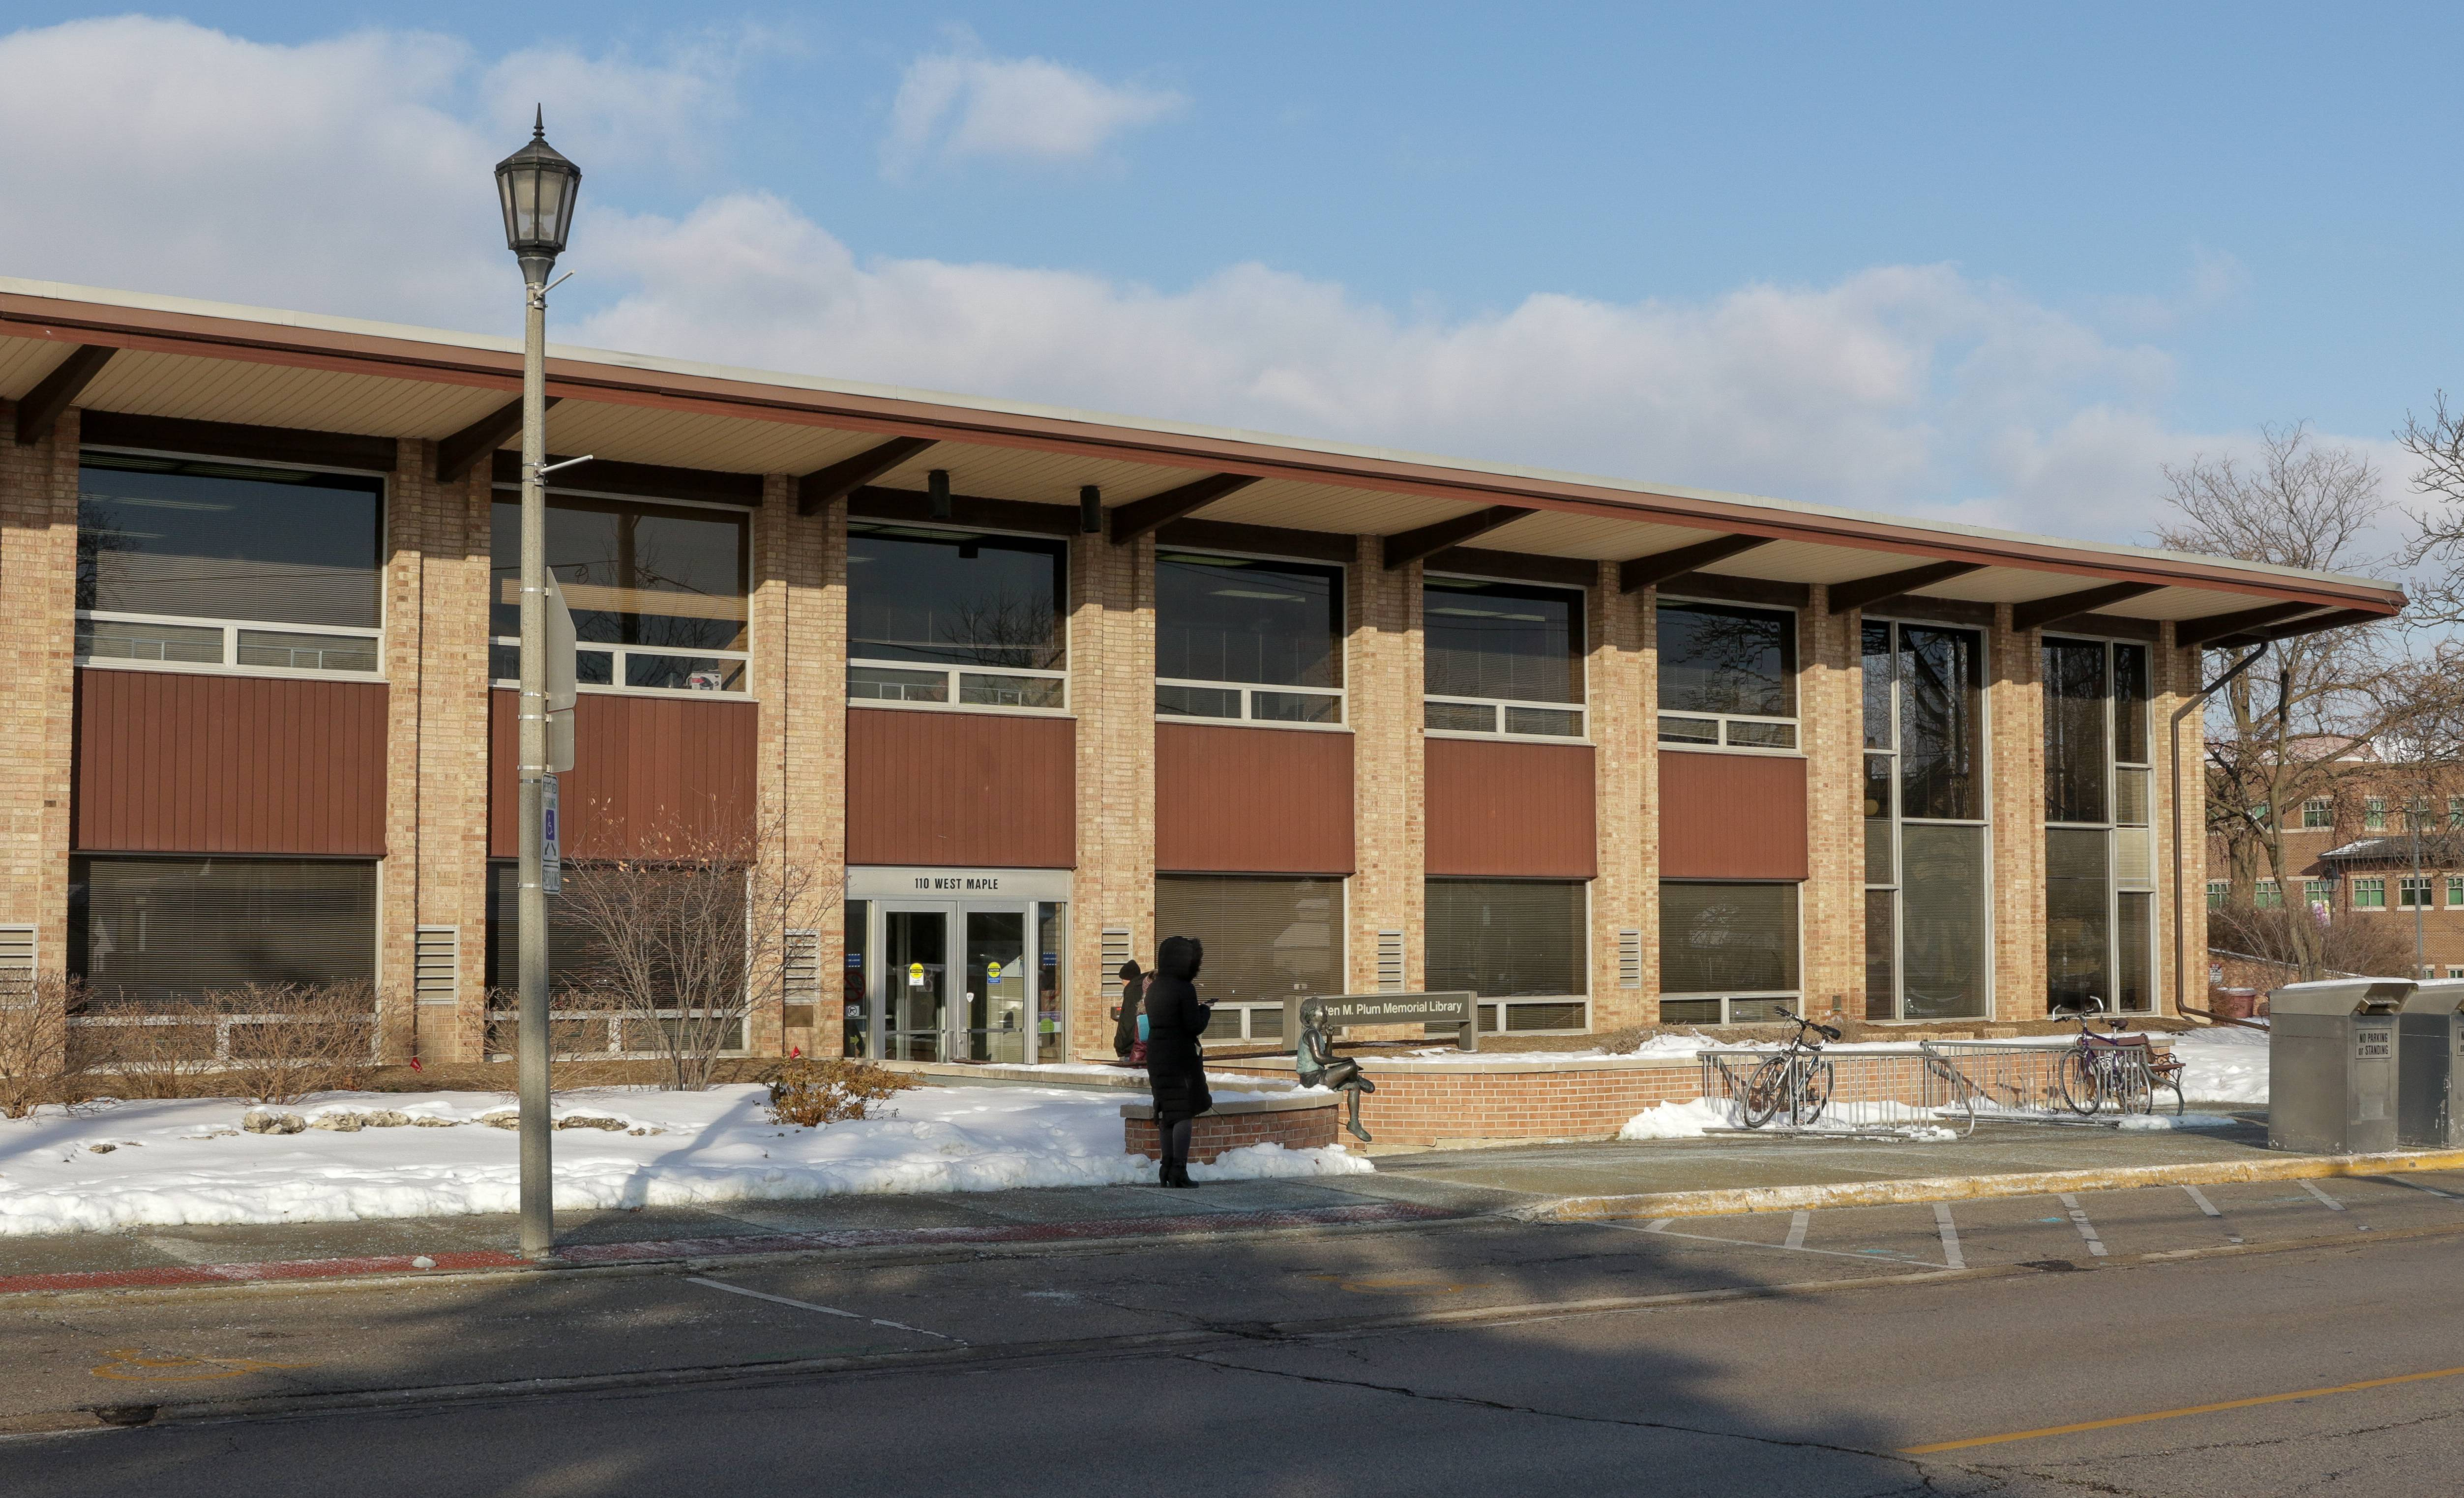 Helen M. Plum Memorial Library officials are moving ahead with a project to replace the existing library at 110 W. Maple St., despite being unable to reach a deal with the park district that could have modified the plan.